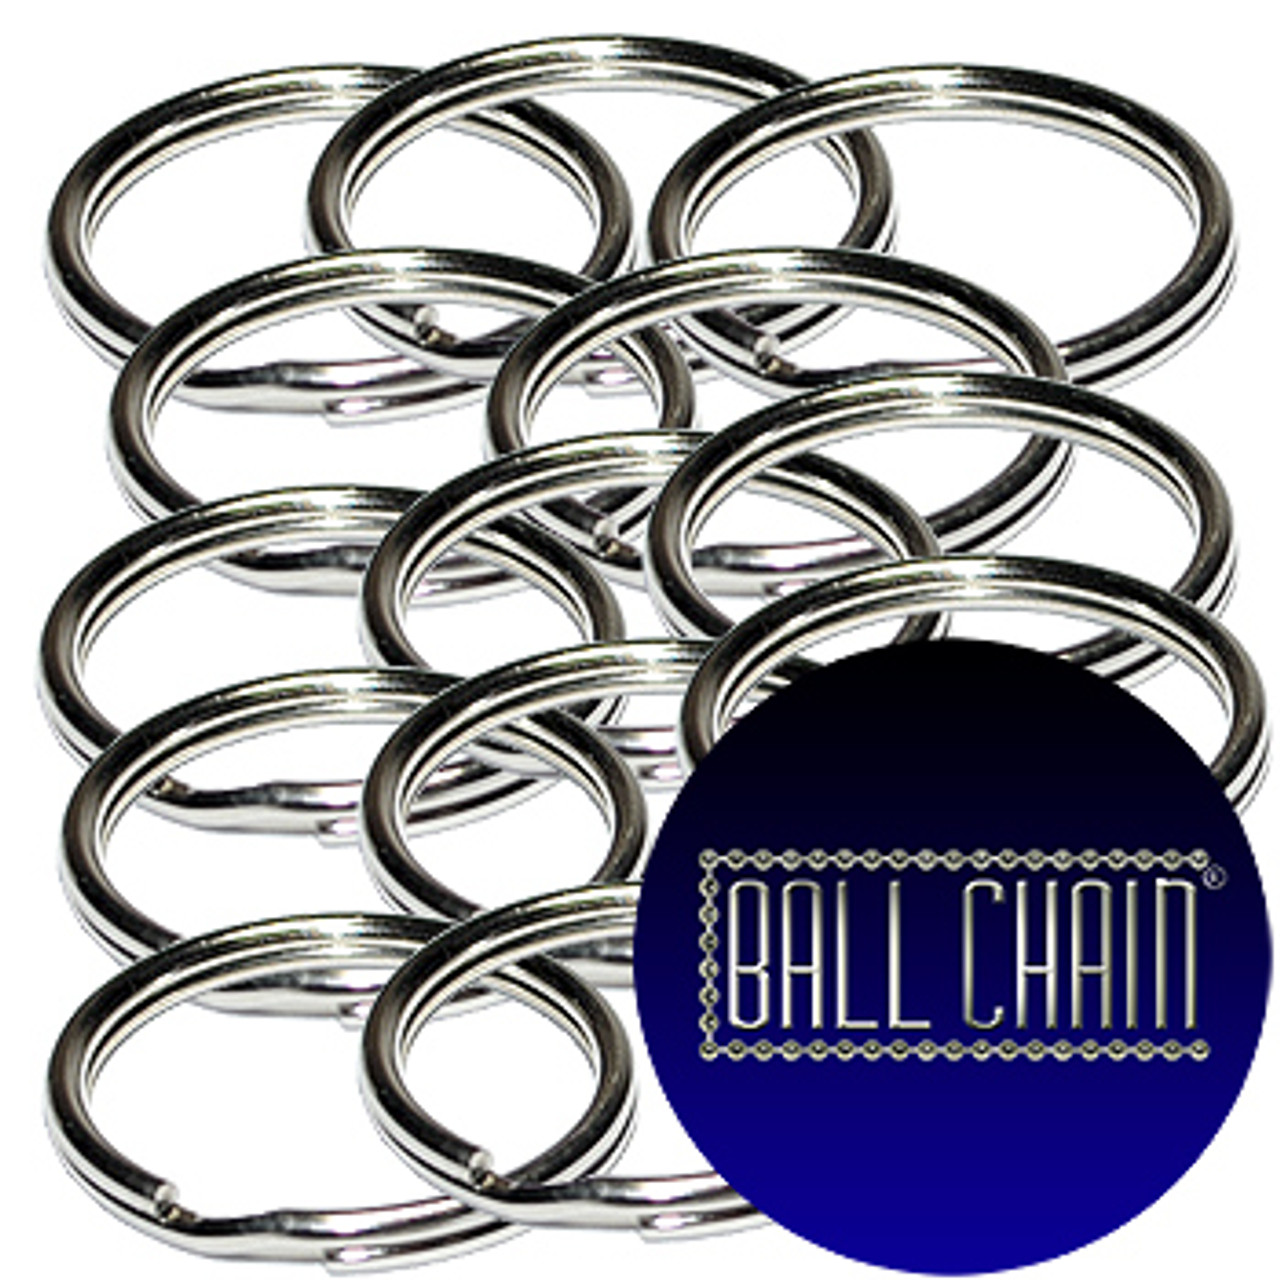 28mm Nickel Plated Steel Split Key Rings sold in bulk at low wholesale prices.